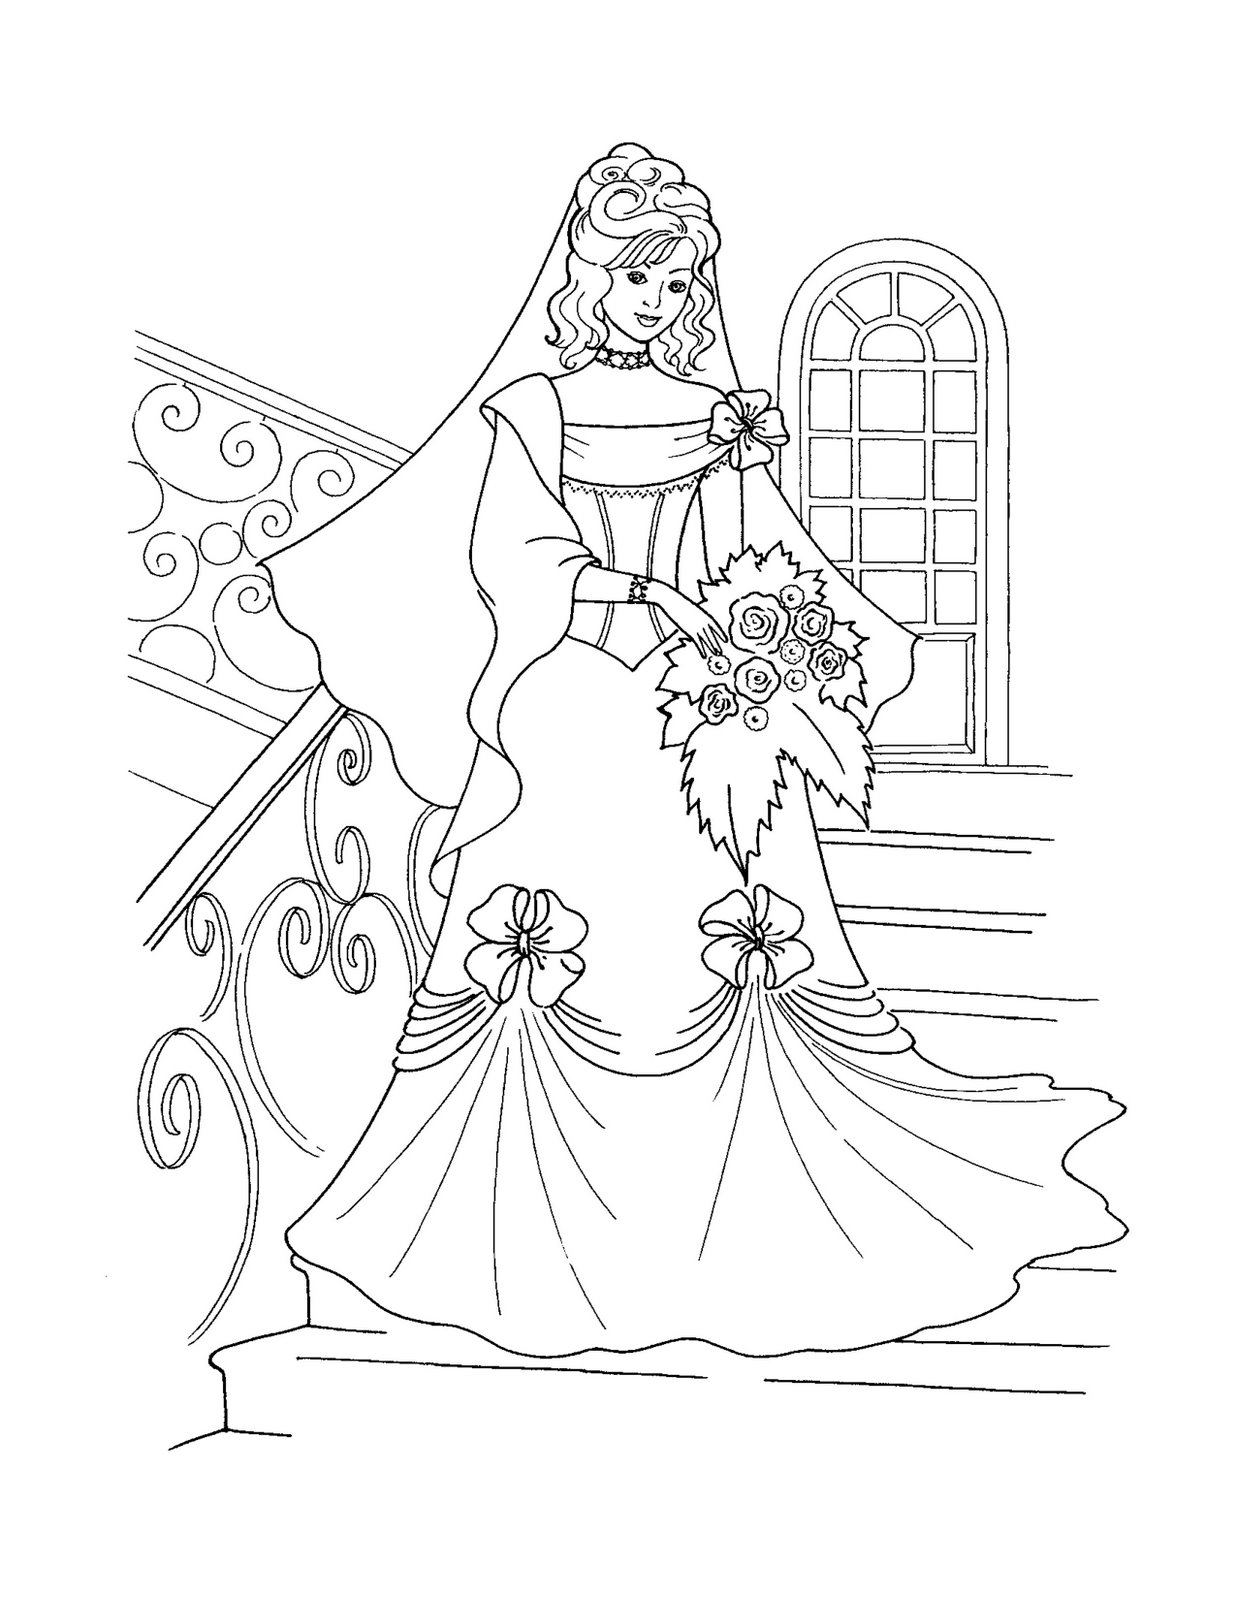 Disney princess christmas coloring pages free - Disney Princess Castle Coloring Pages